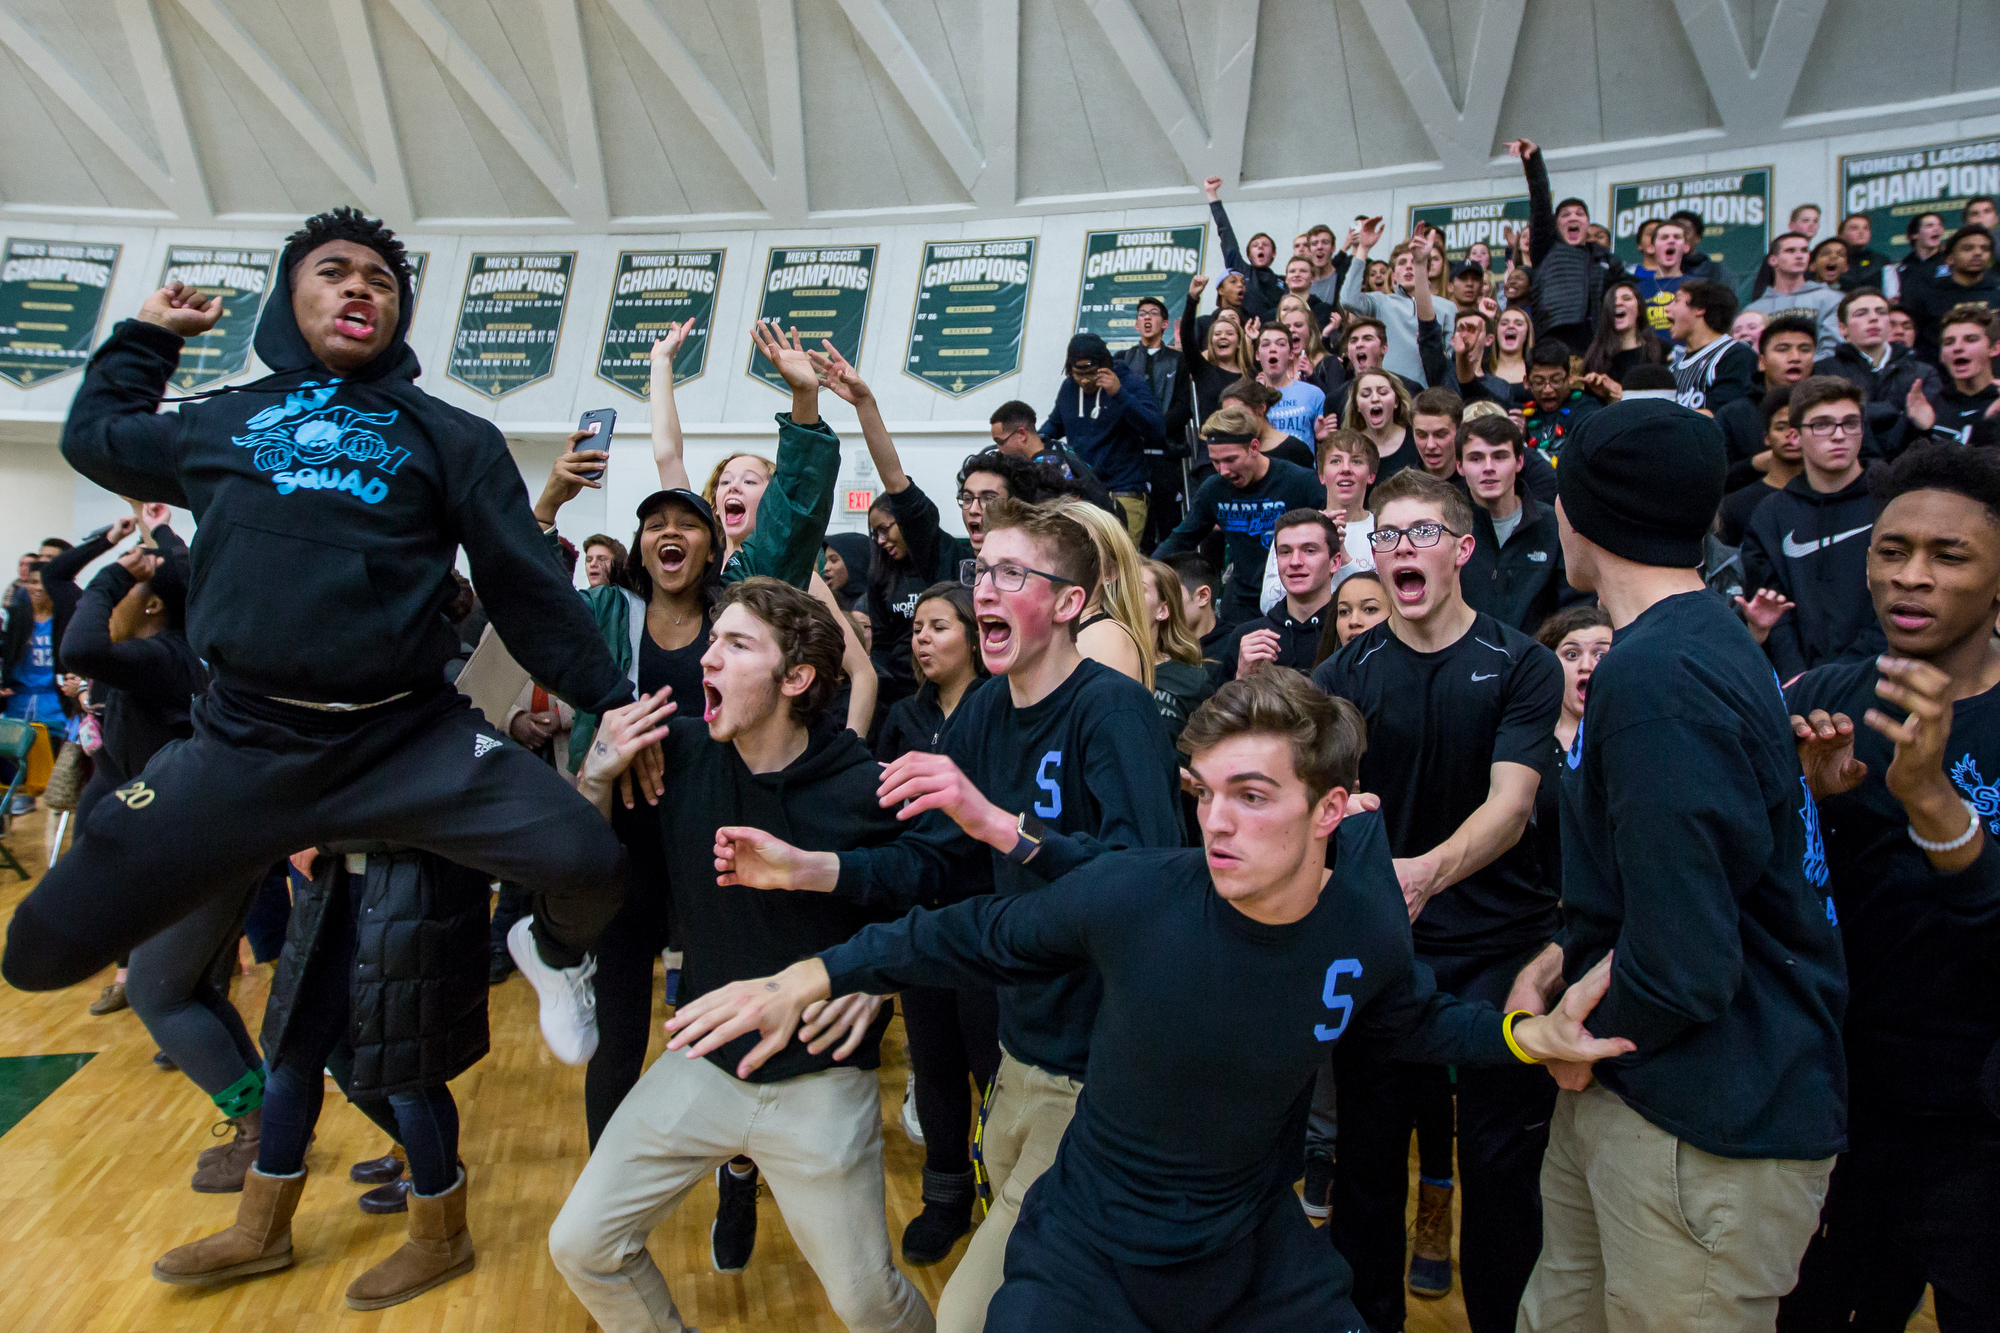 Skyline High School students react after Skyline beat Huron High School in triple overtime at Huron High School on Friday, December 16, 2016. Skyline High School beat Huron High School 95-92 in triple overtime. Matt Weigand | The Ann Arbor News